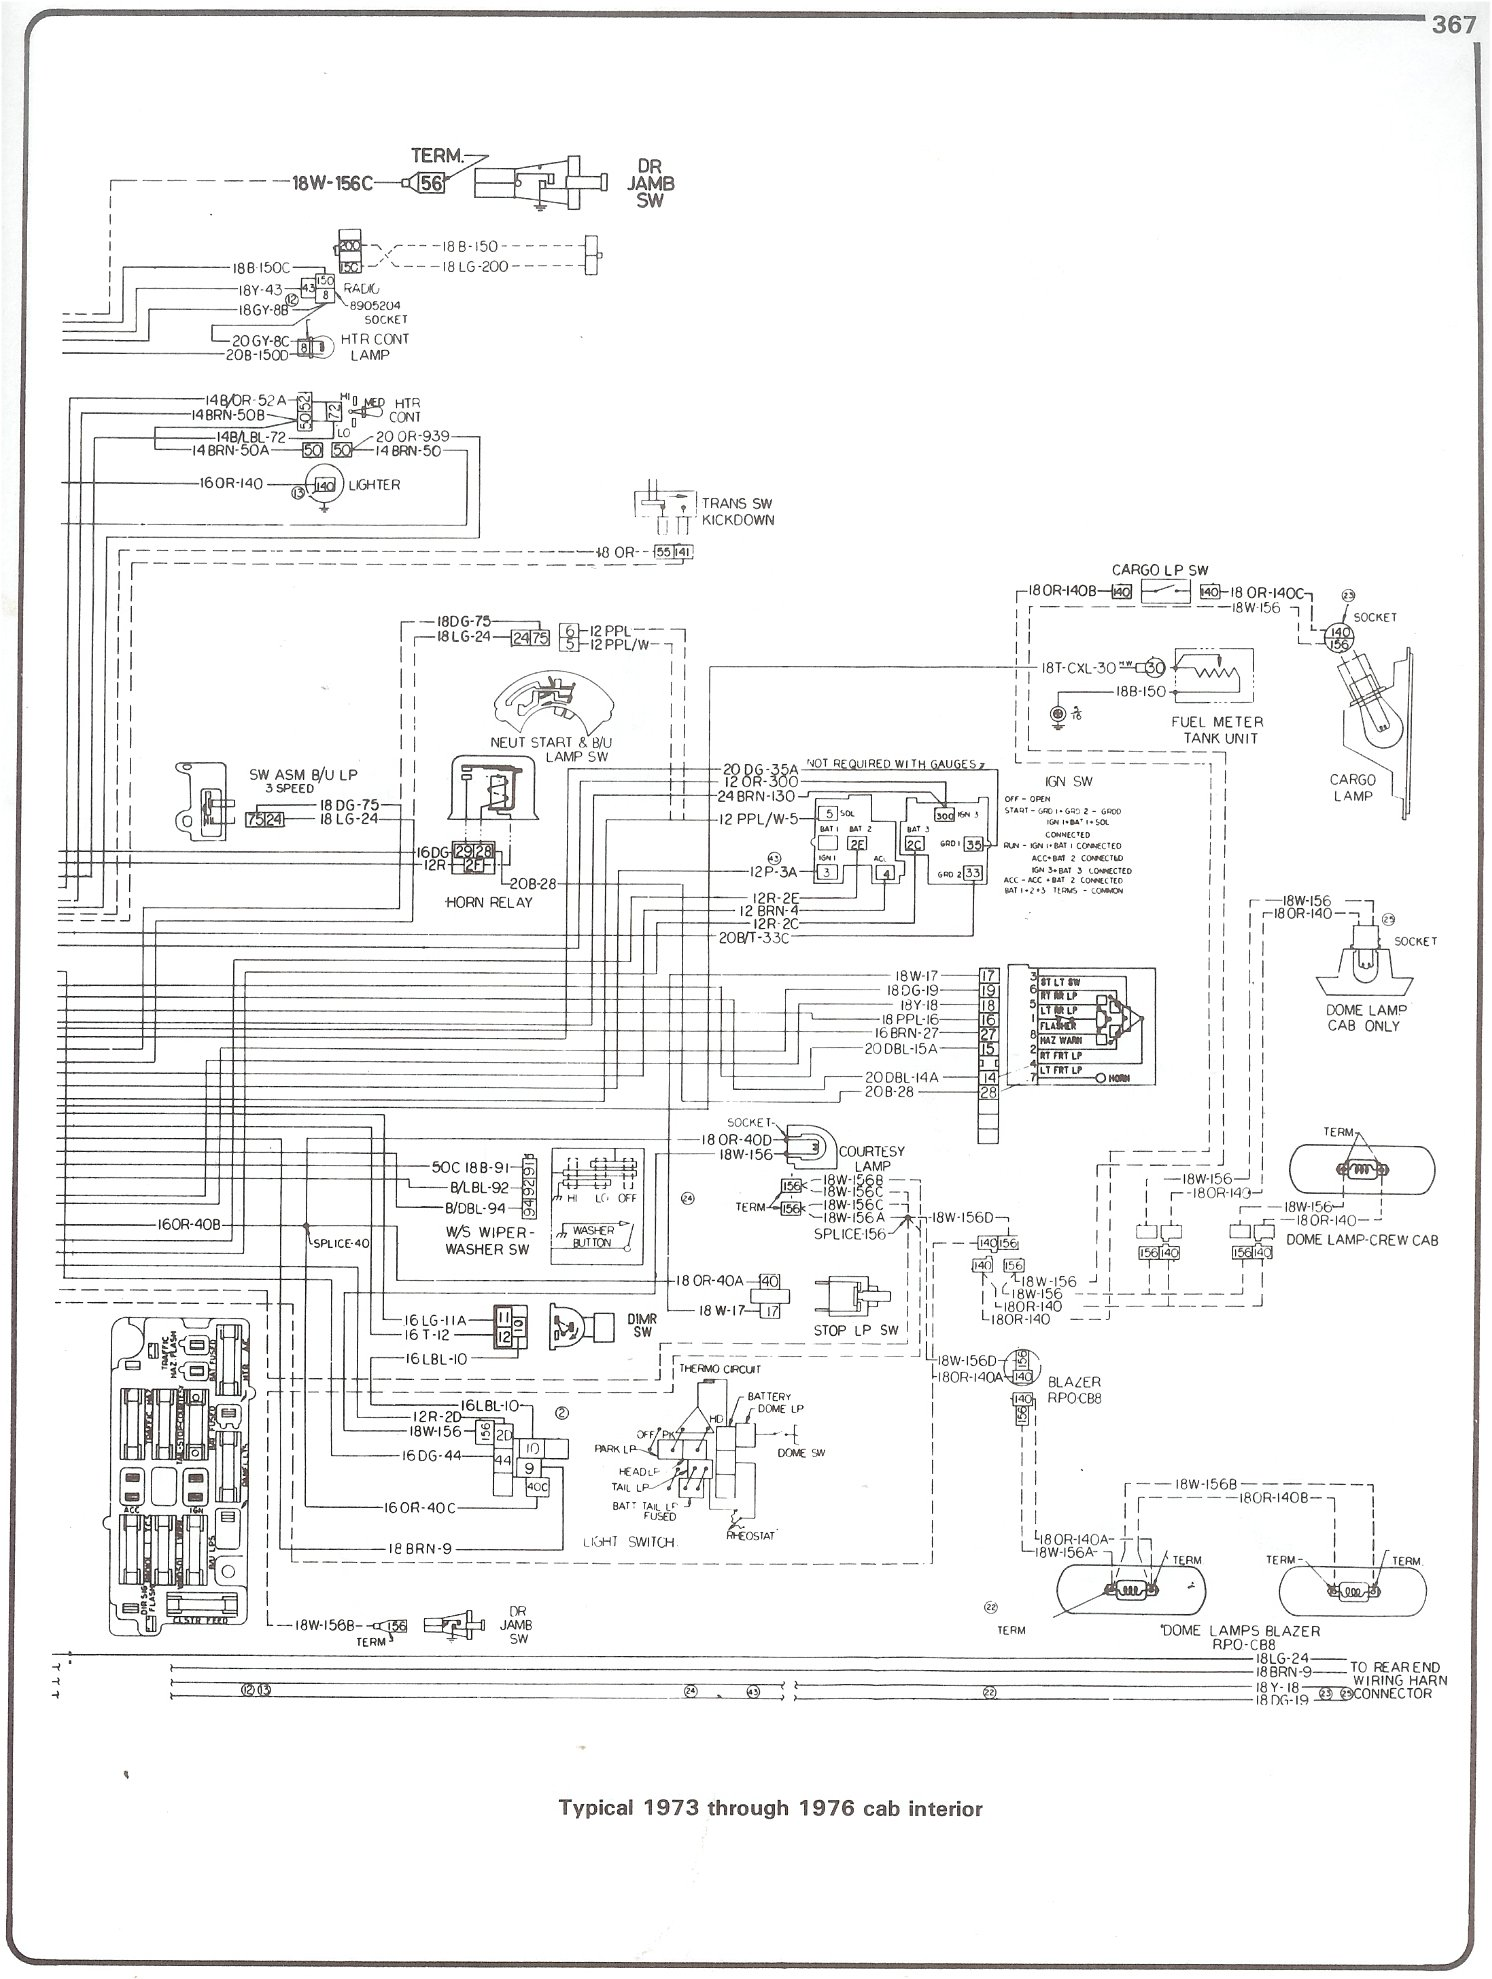 chevy c10 wiring diagram on chevy c10 instrument cluster wiringcomplete 73 87 wiring diagrams rh forum 73 87chevytrucks com